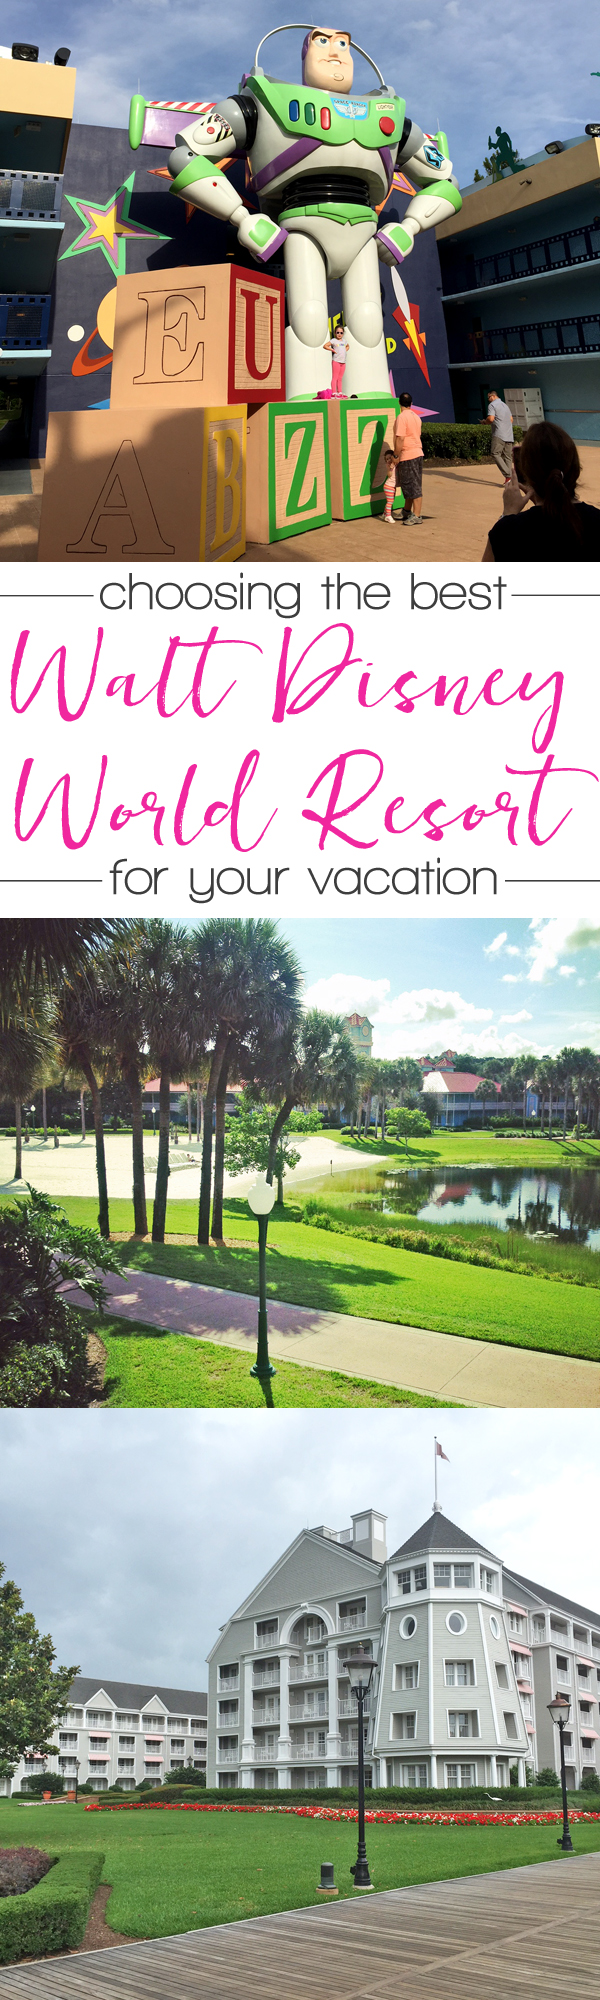 Disney World Resorts Tips